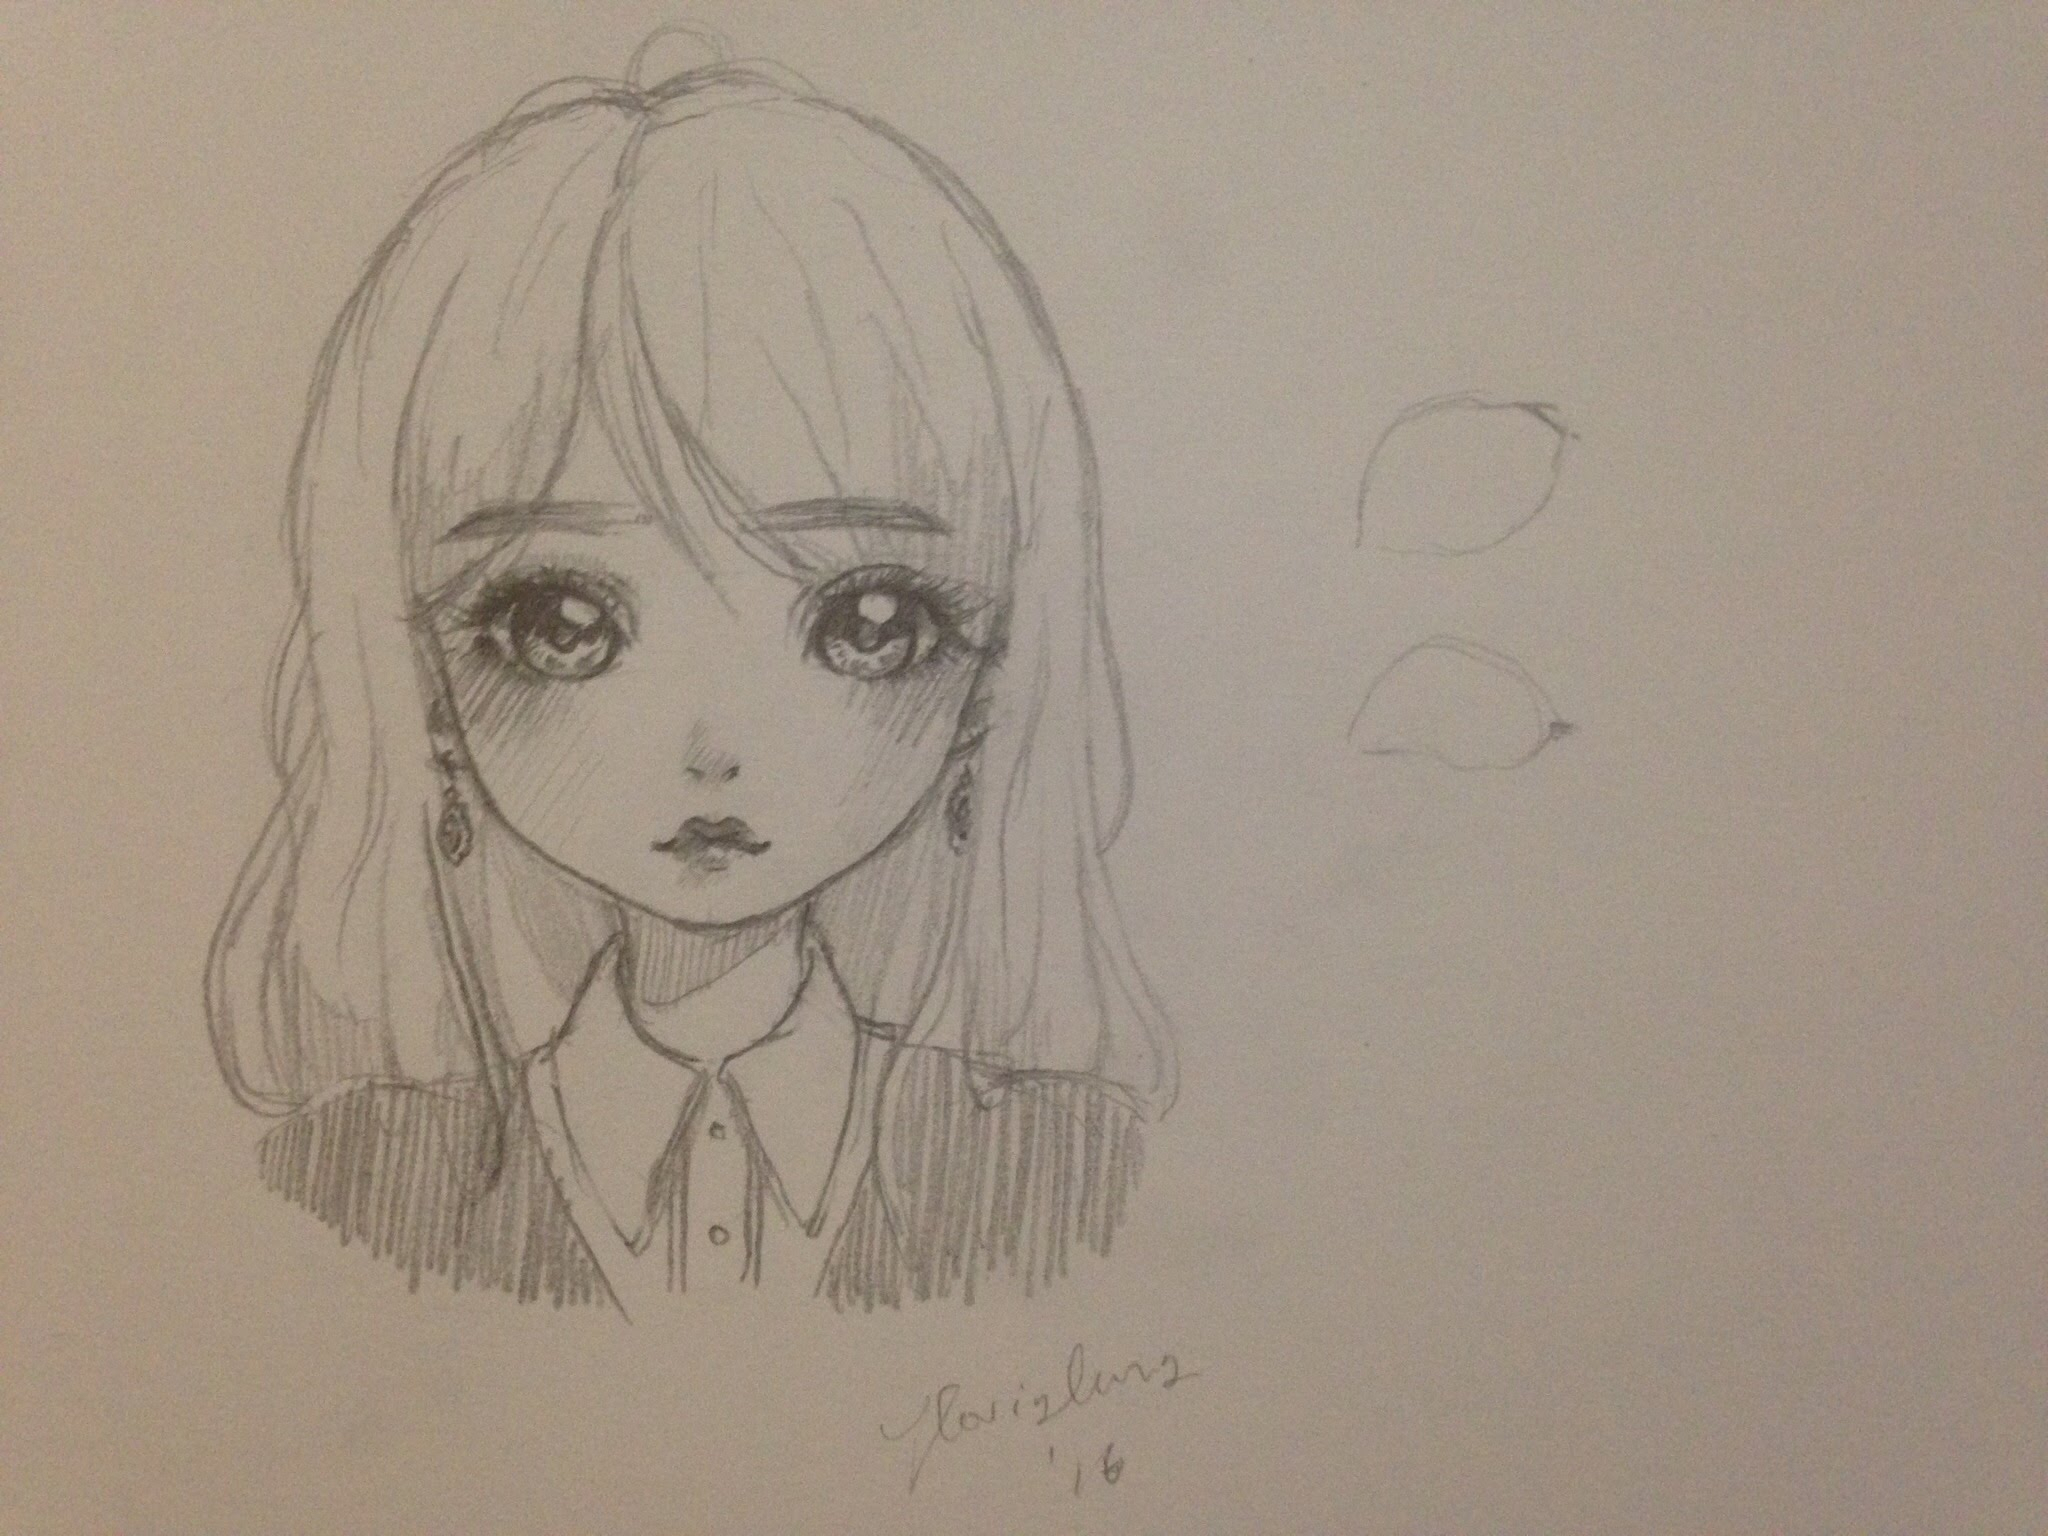 2048x1536 Girlish Cute Doll Image Sketch How To Draw A Girl (Mangadoll